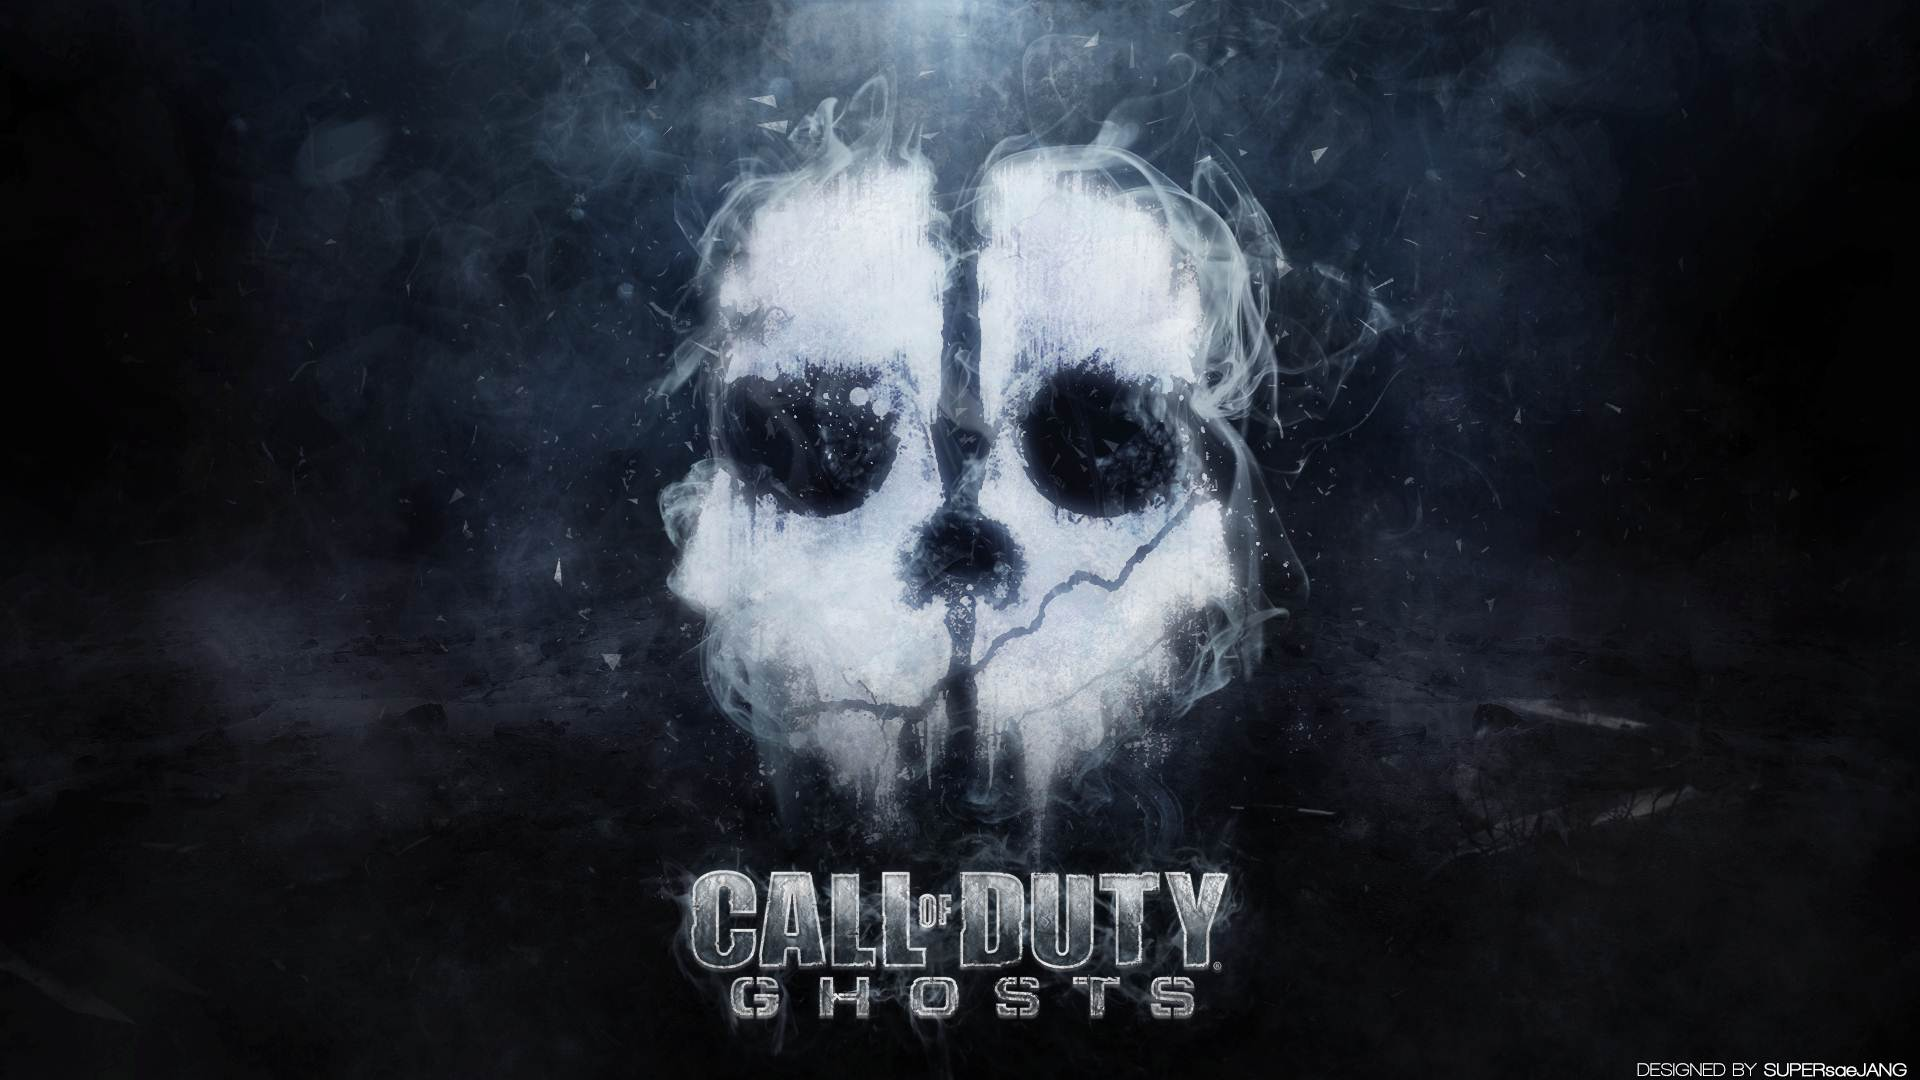 call of duty ghosts hd wallpapers GamingBoltcom Video Game News 1920x1080